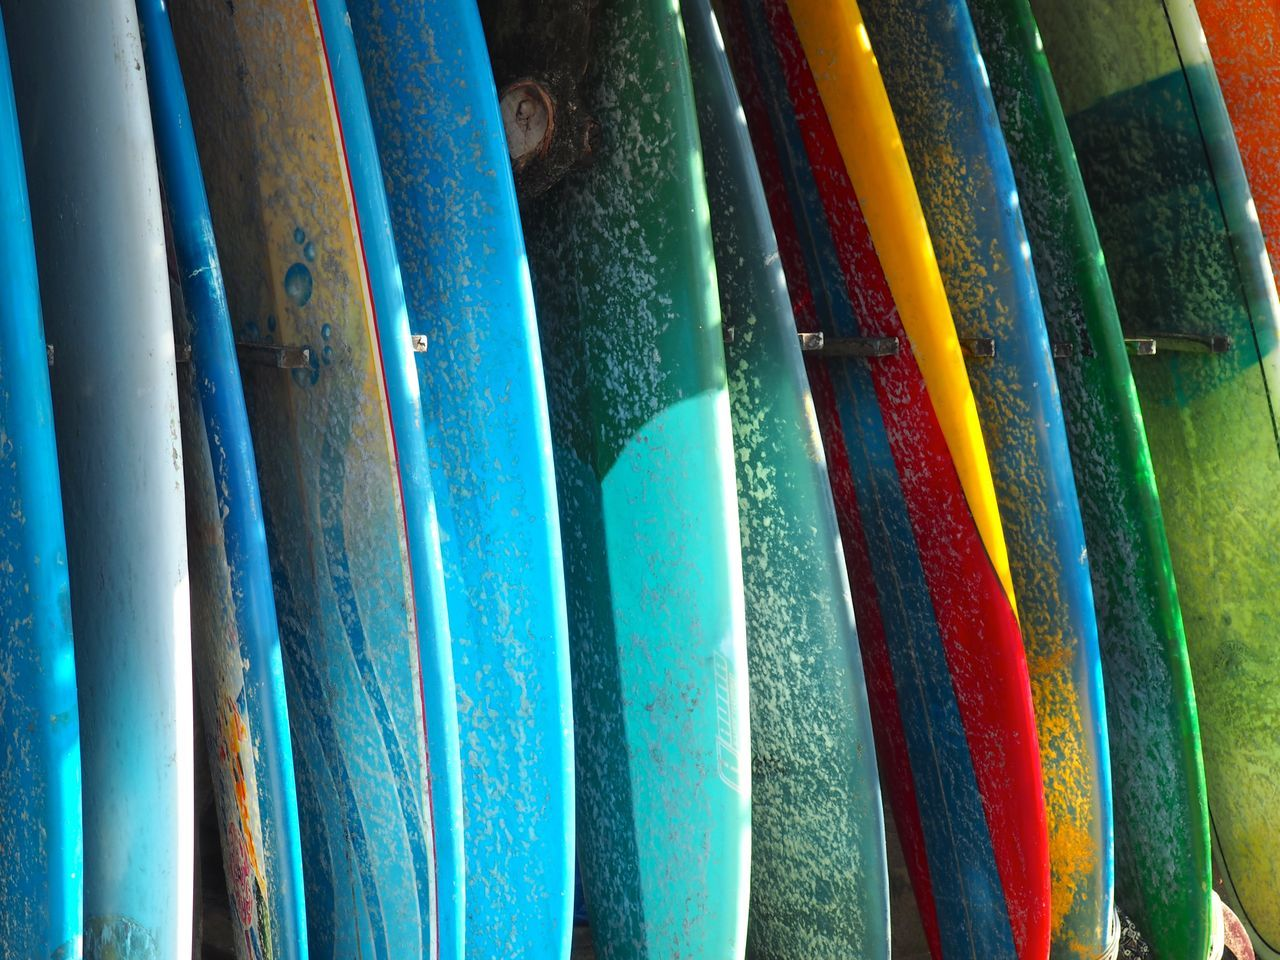 Arrangement Backgrounds Bali Blue Canggu Close-up Day Exotic Full Frame Hobby In A Row INDONESIA Large Group Of Objects Lifestyles Multi Colored No People Rainbow Colors Surf Surfboard Surfing Textured  Traveling Variation Water Sports Waves